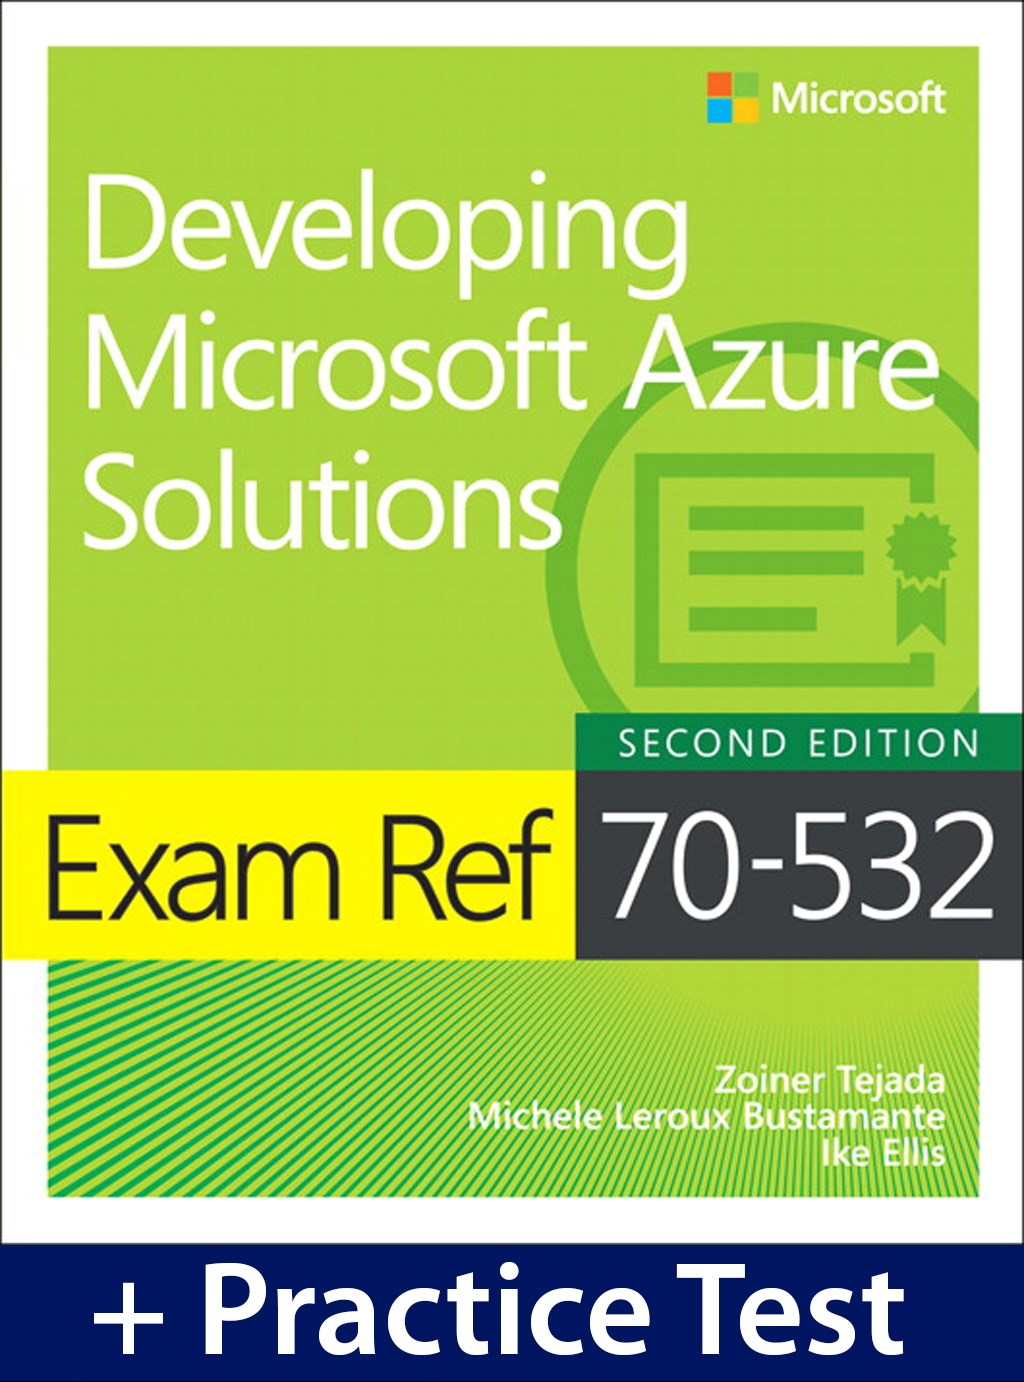 Microsoft press store books ebooks online resources exam ref 70 532 developing microsoft azure solutions with practice test 2nd edition xflitez Gallery